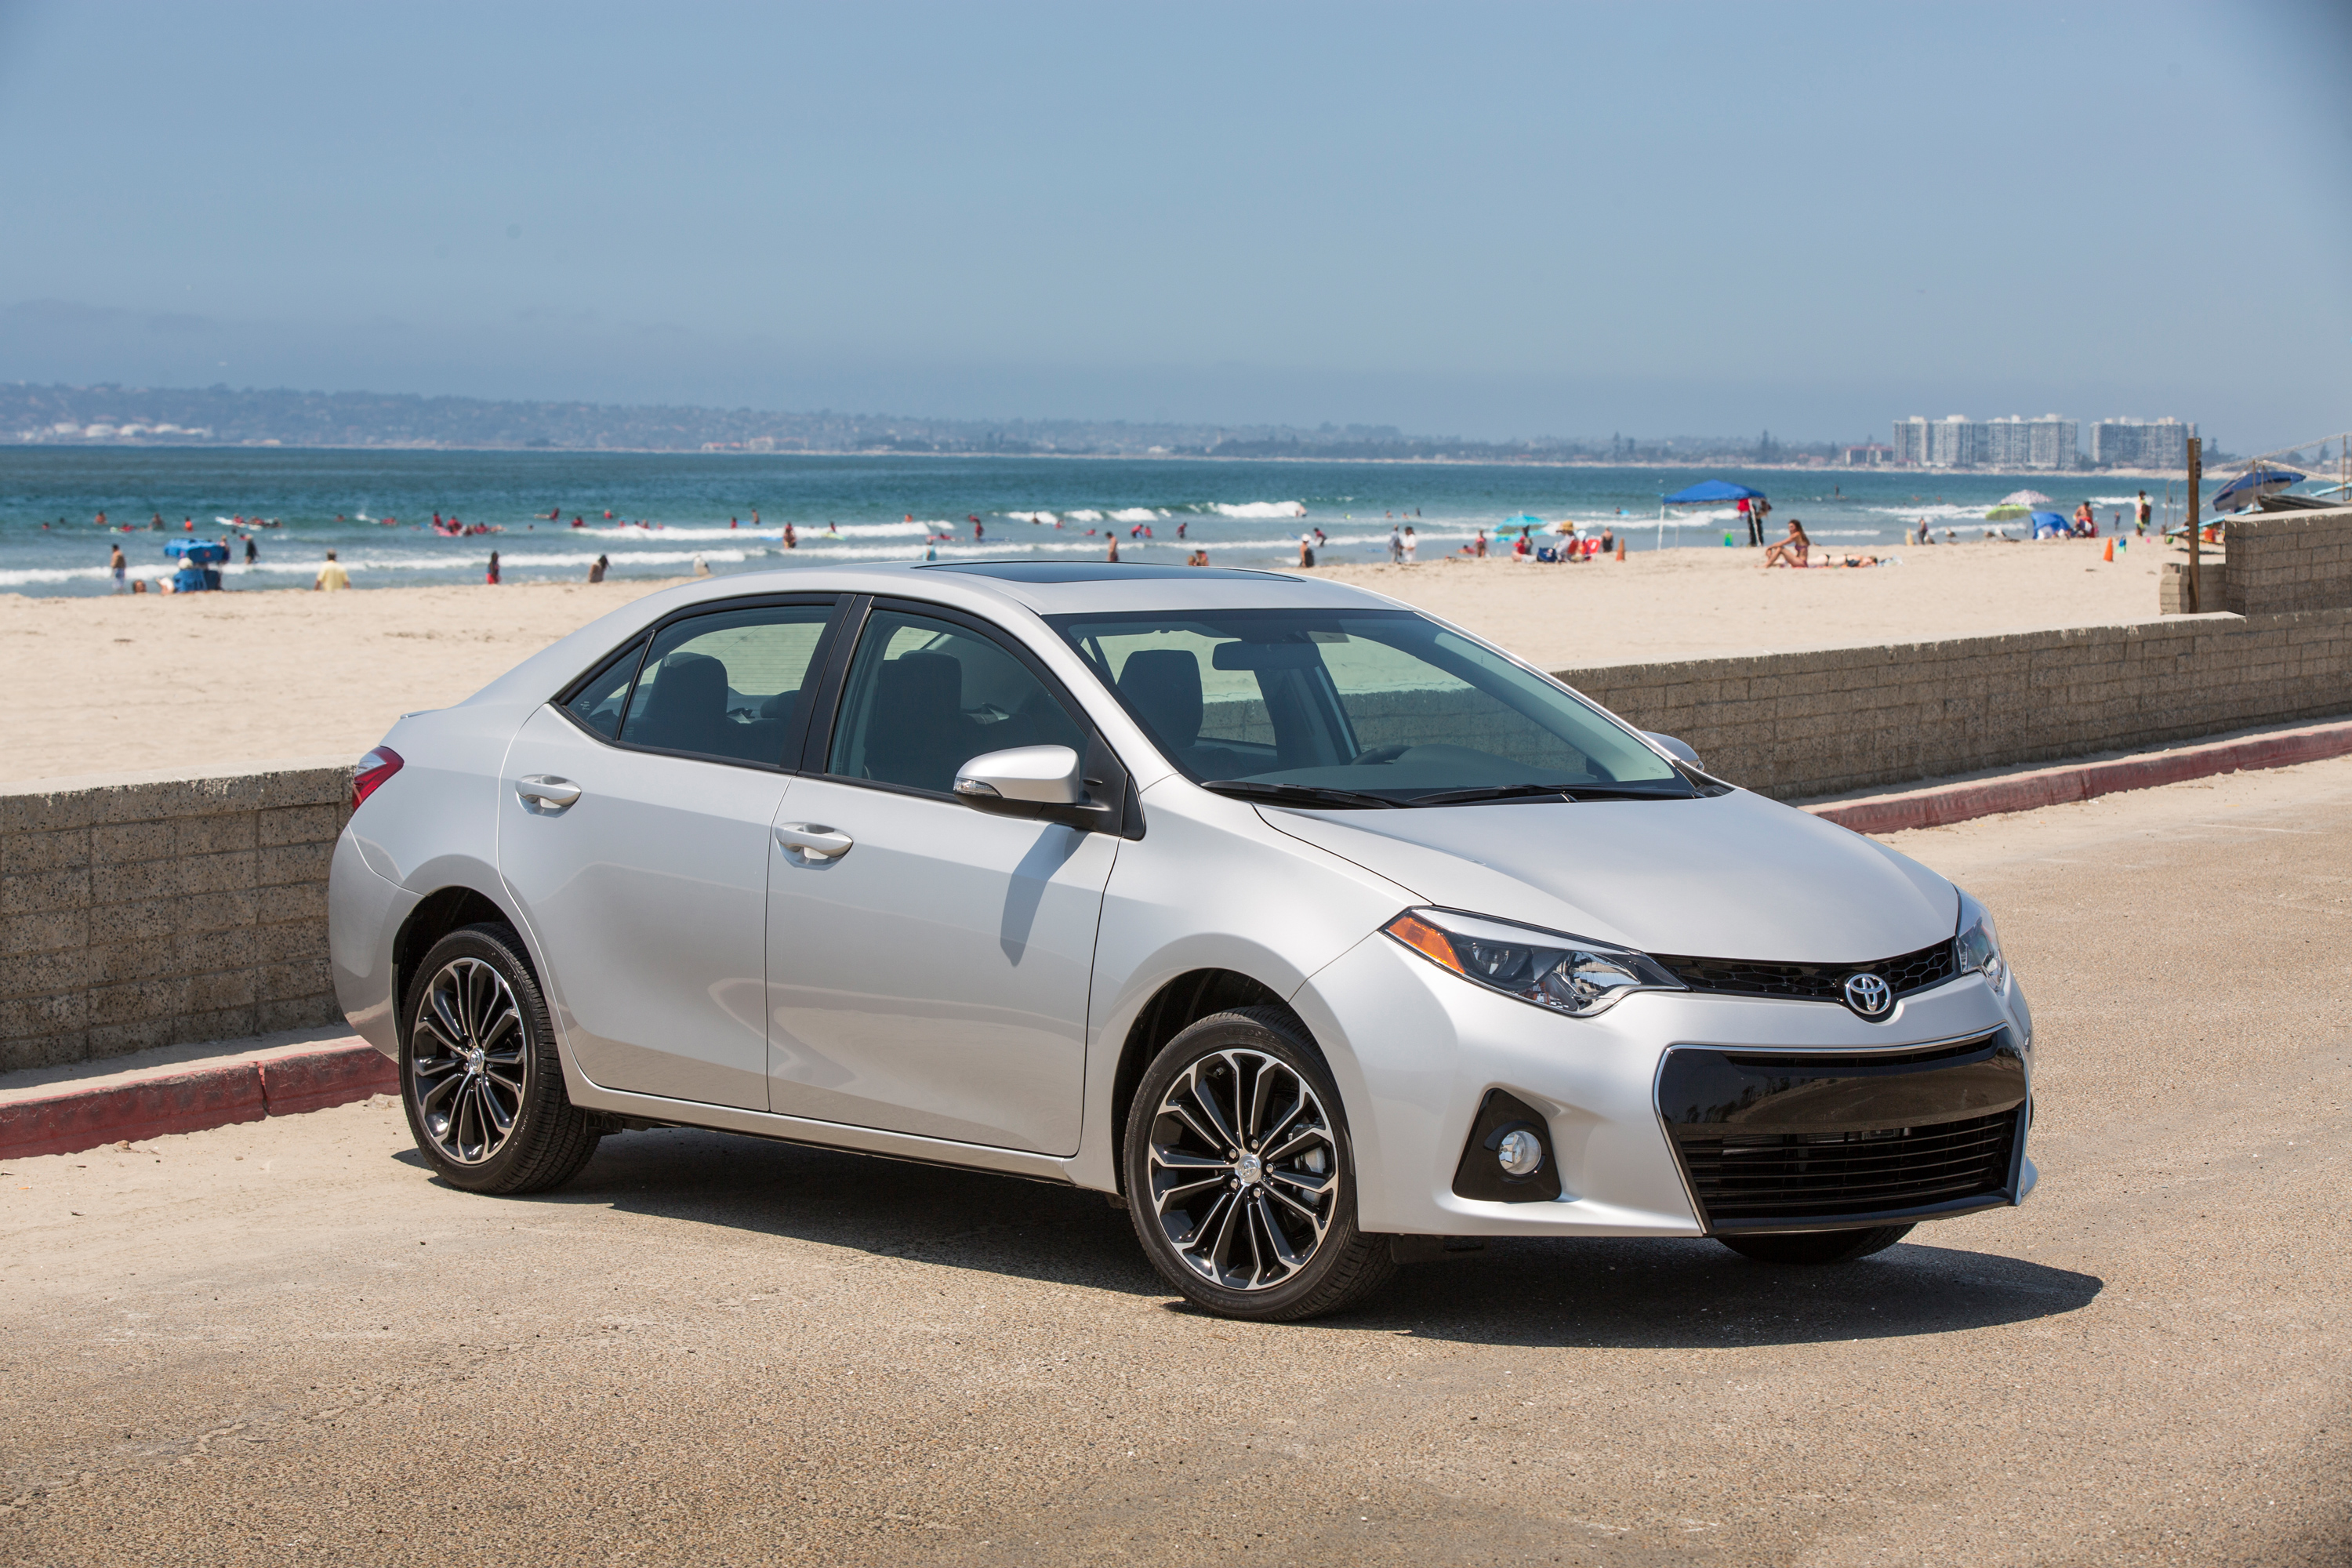 corolla under usautomobile owner clean le carfax toyota warranty nj l edison